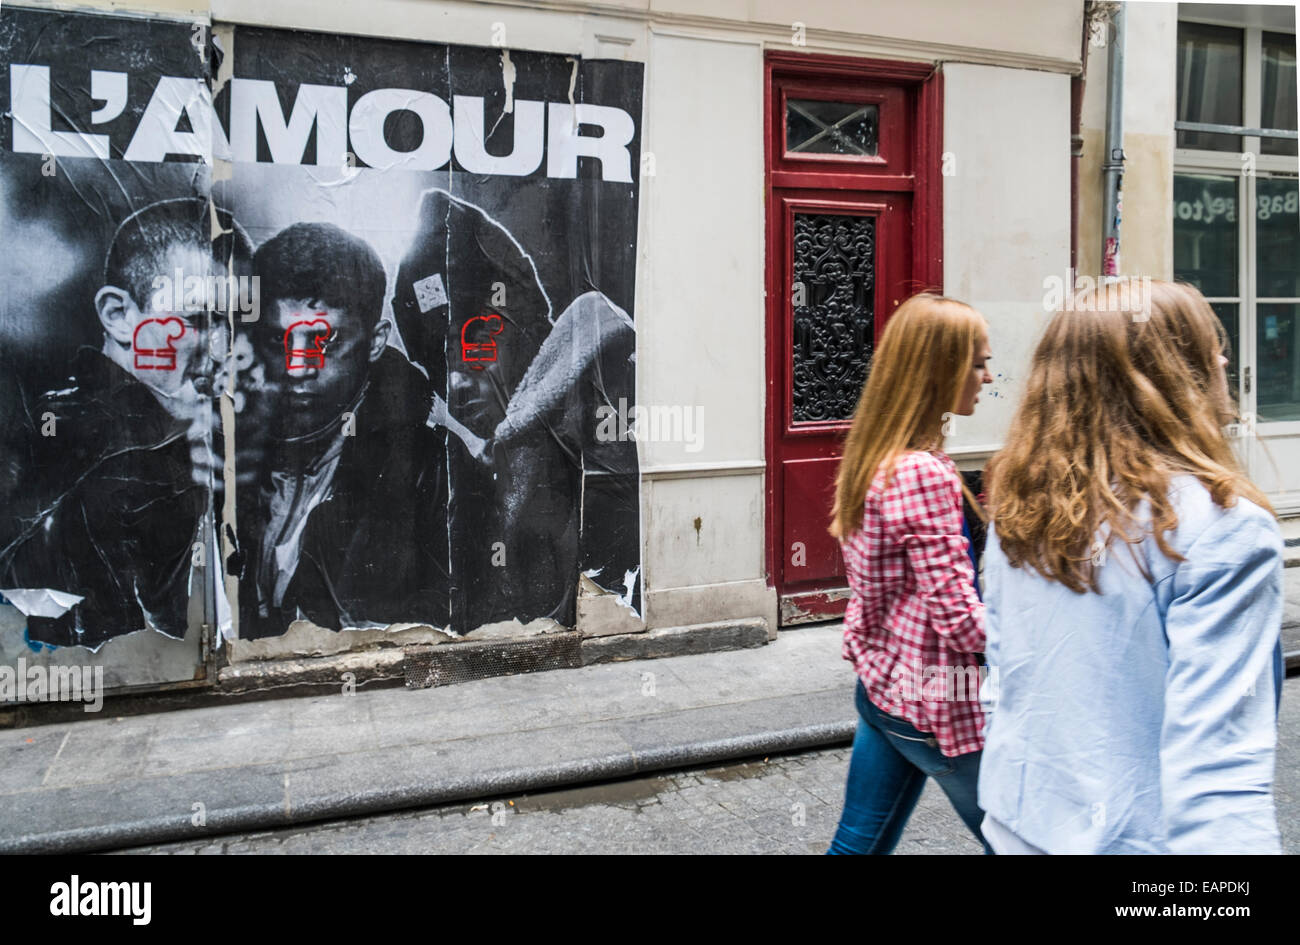 two young women passing by a poster on a wall showing three youth one of them holding a gun, the lettering on top - Stock Image